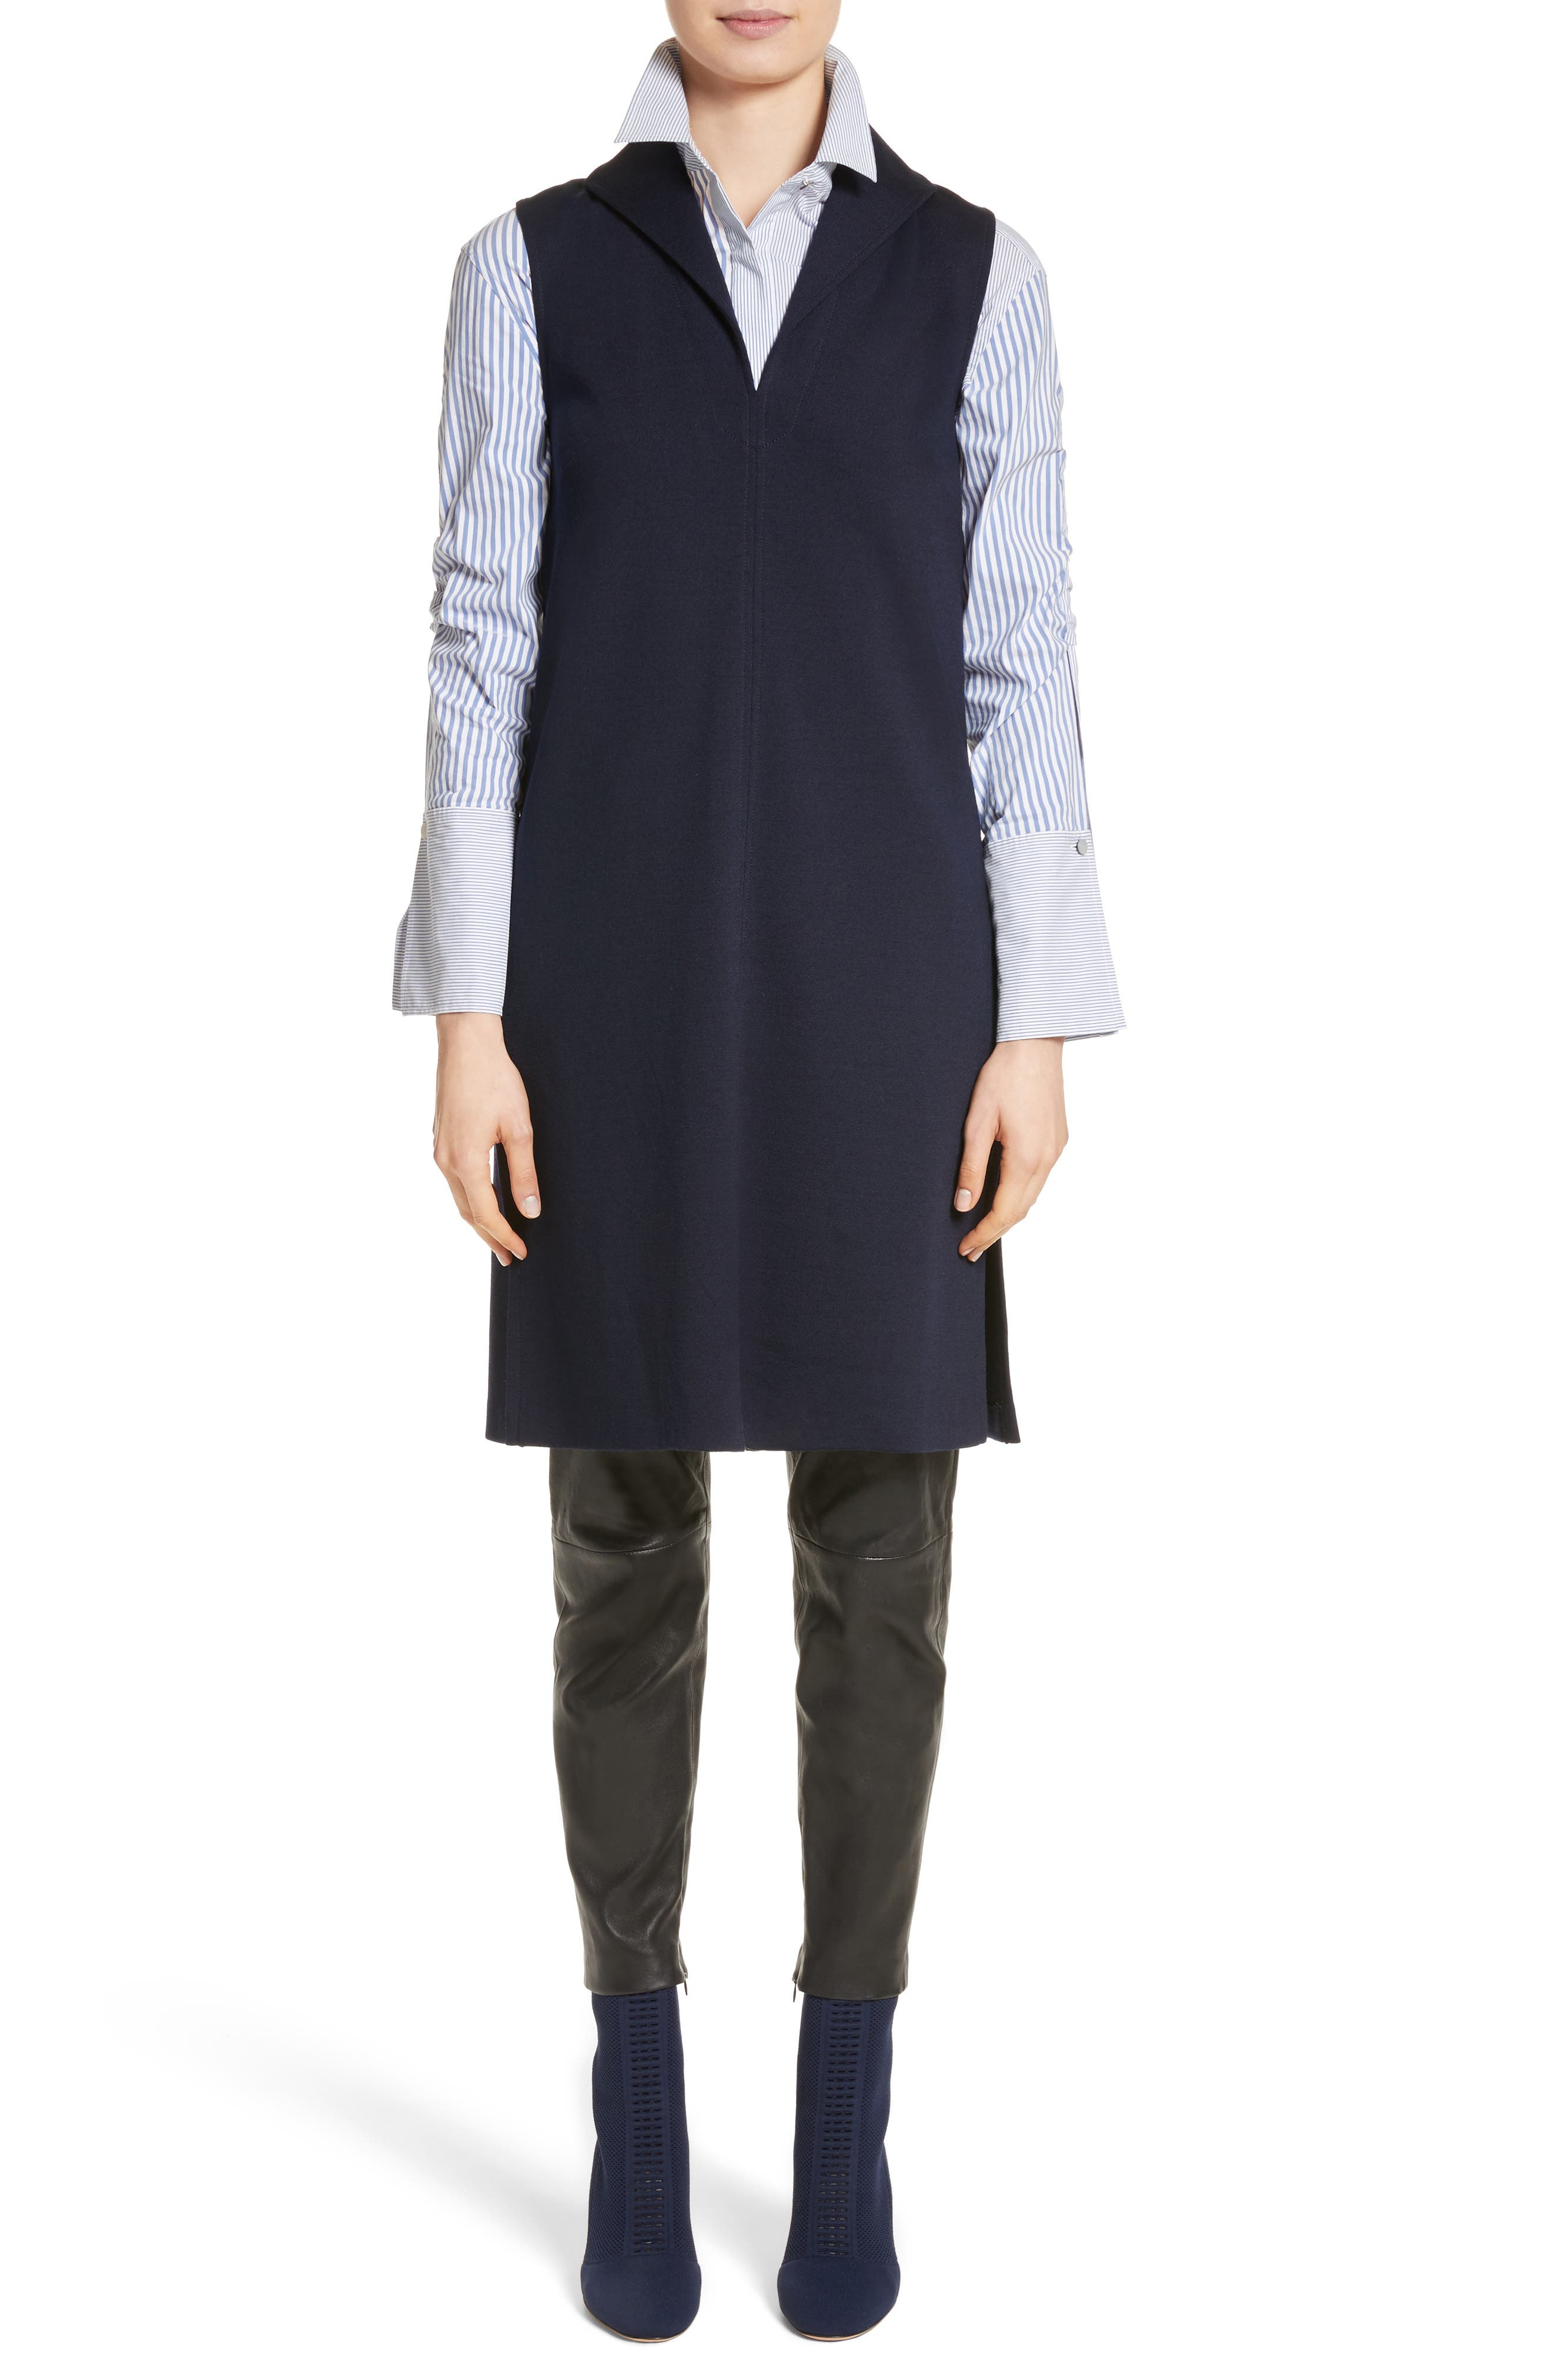 St John Collection Milano Knit Collared Tunic,                             Alternate thumbnail 7, color,                             410